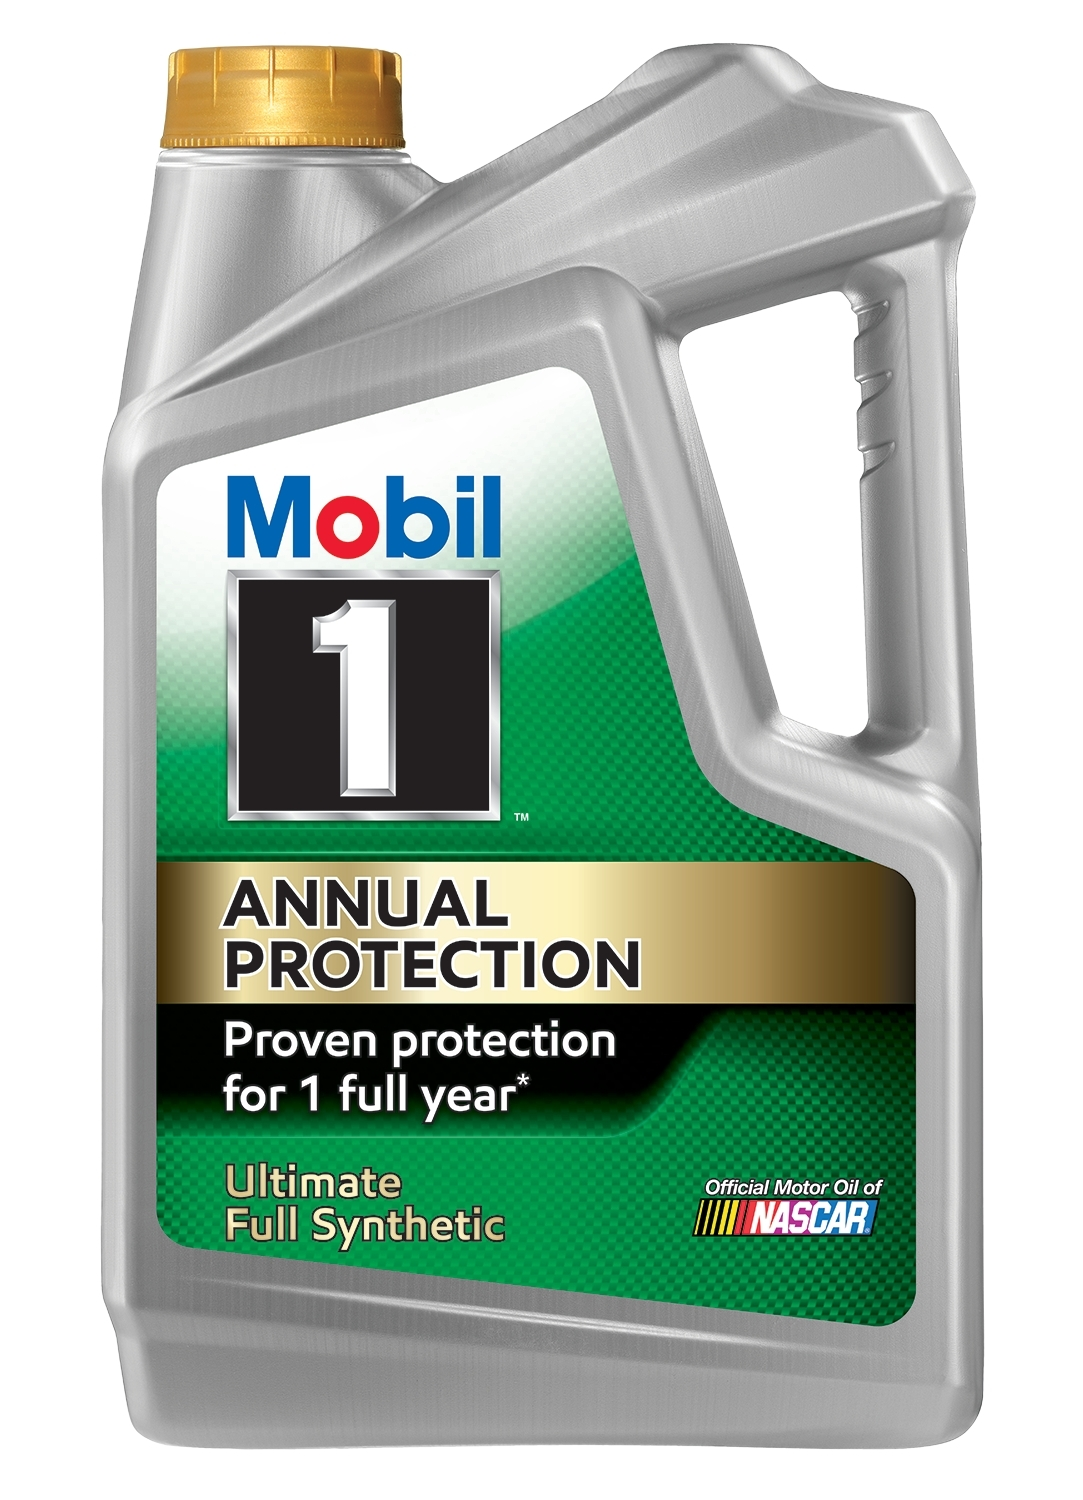 Mobil Oil Change >> Exxonmobil To Drivers Don T Change Your Oil For One Full